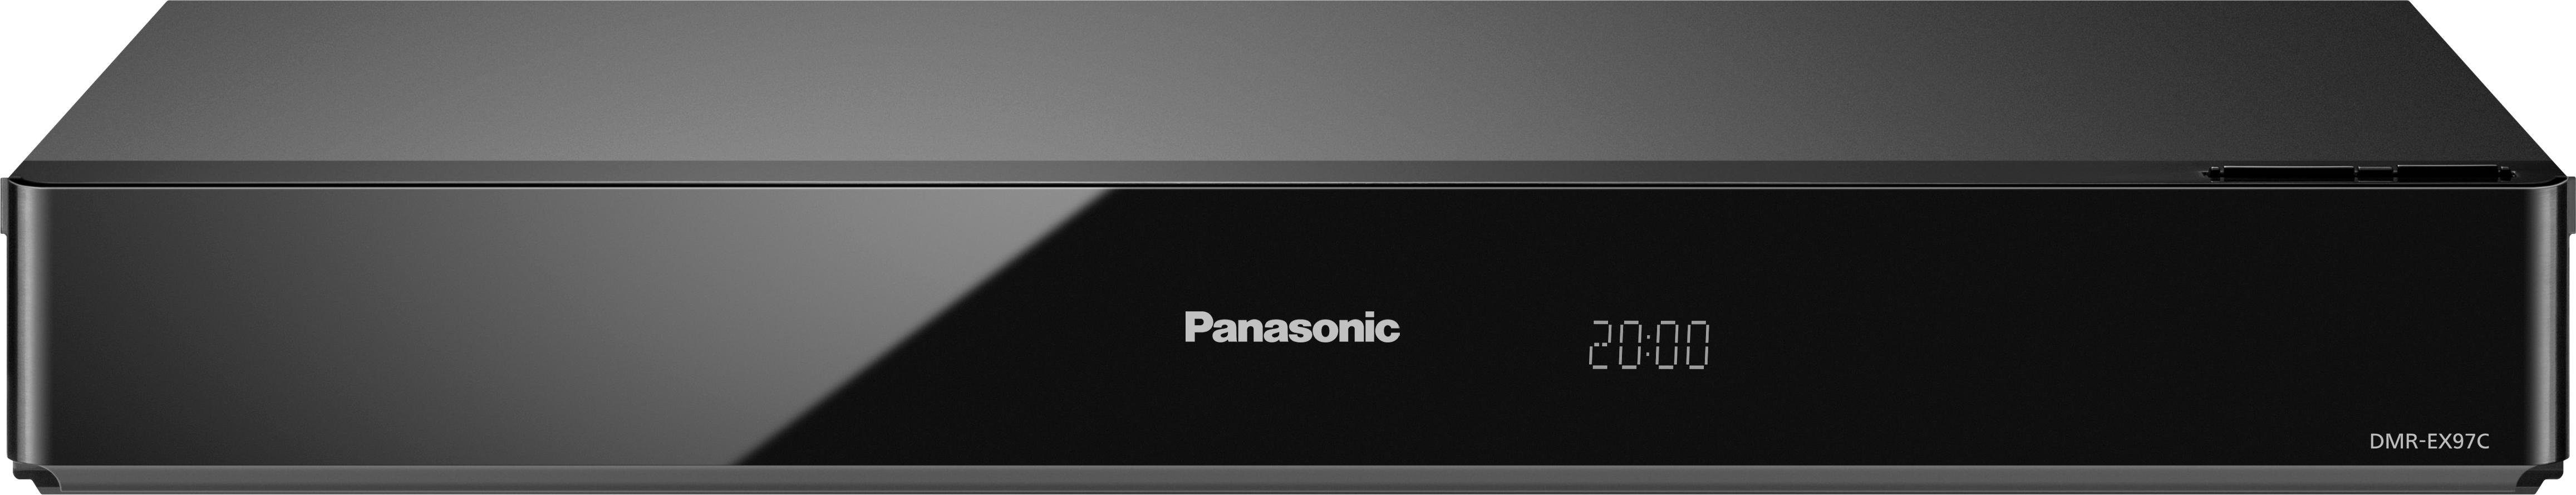 Panasonic DMR-EX97CEGK DVD Recorder, 3D-fähig, 1080p (Full HD), 500 GB